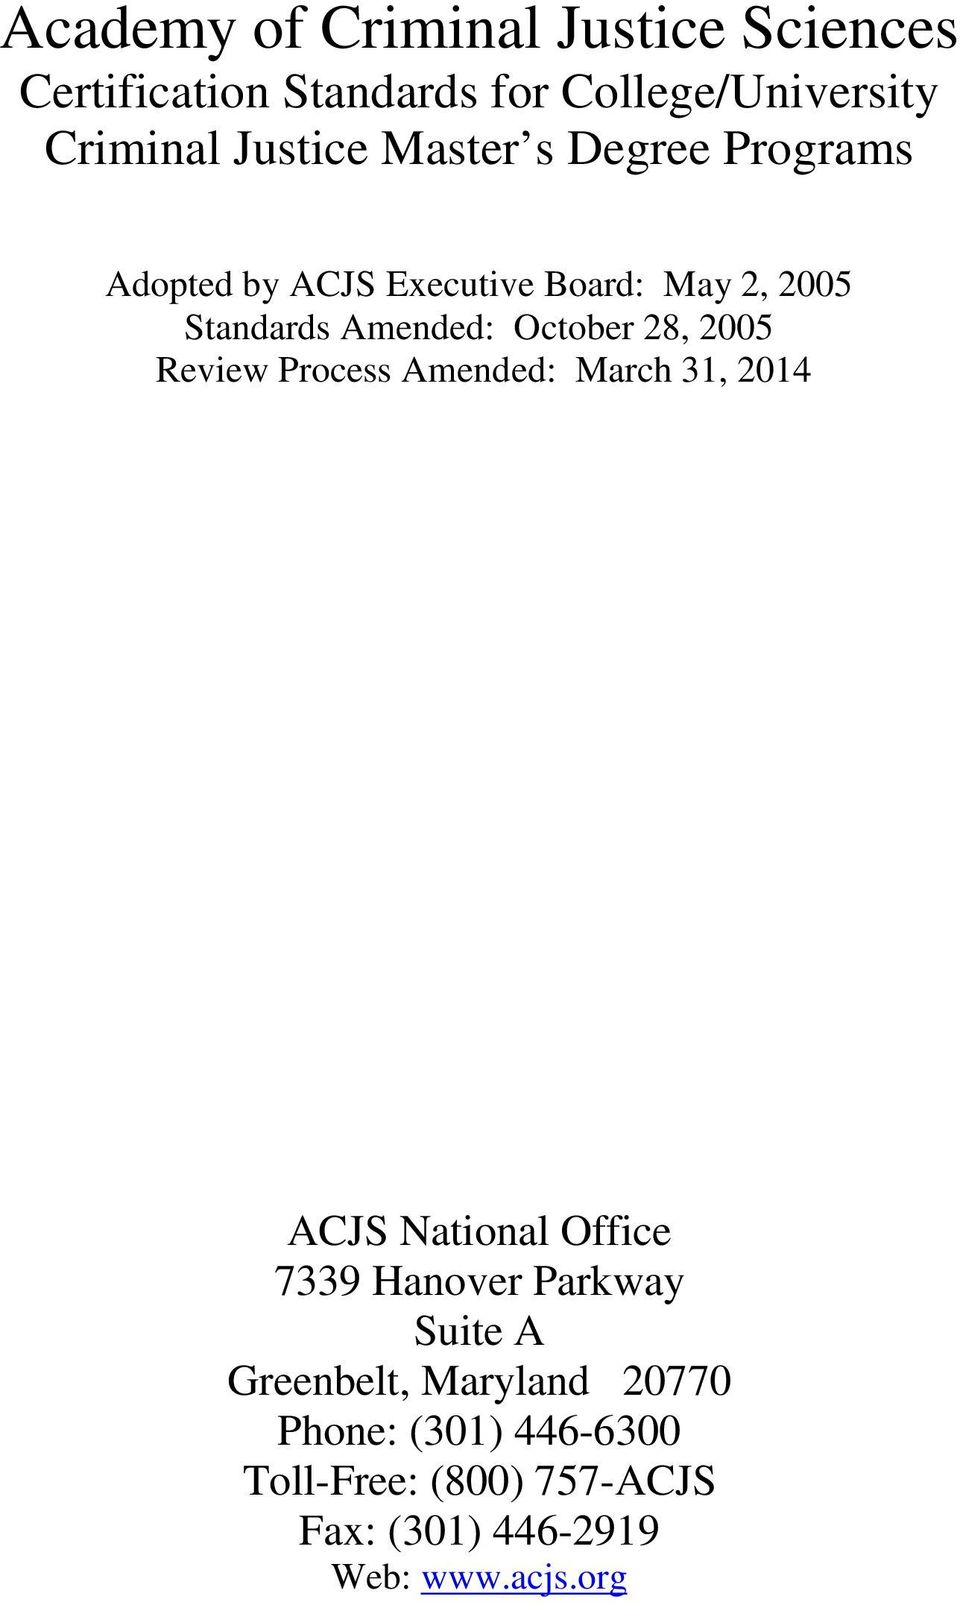 2005 Review Process Amended: March 31, 2014 ACJS National Office 7339 Hanover Parkway Suite A